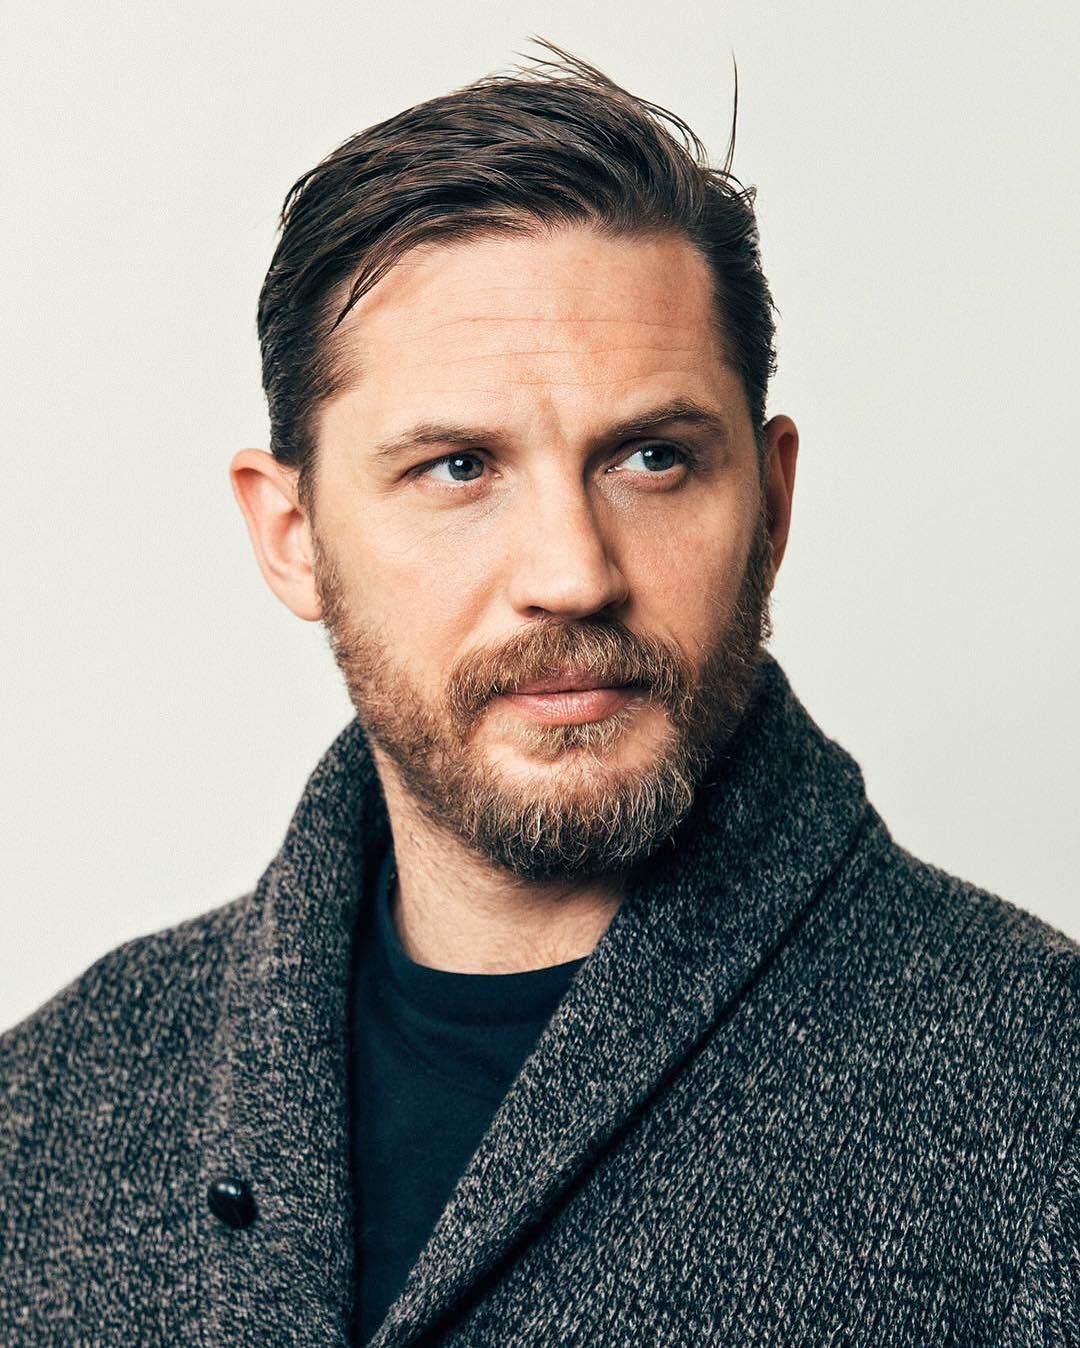 Cool 40 Steaming Tom Hardy Haircuts Looks For Every Guy To Try